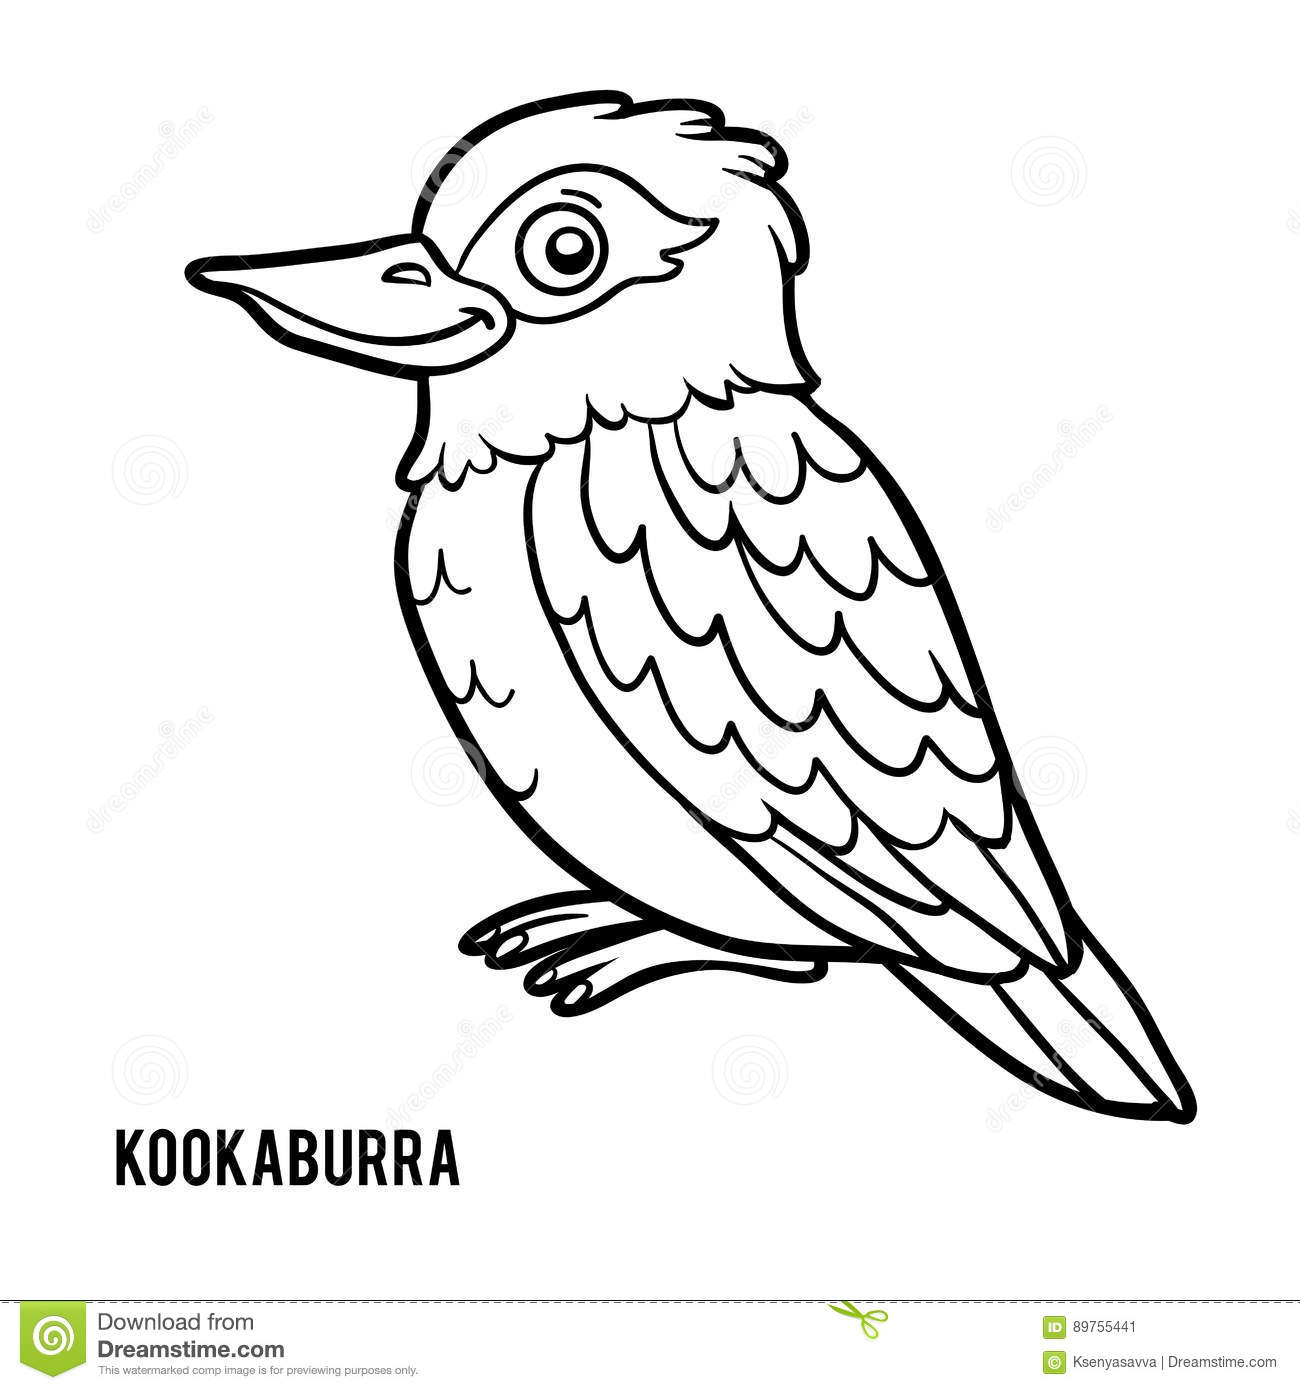 Coloring Book Kookaburra Stock Vector Illustration Of